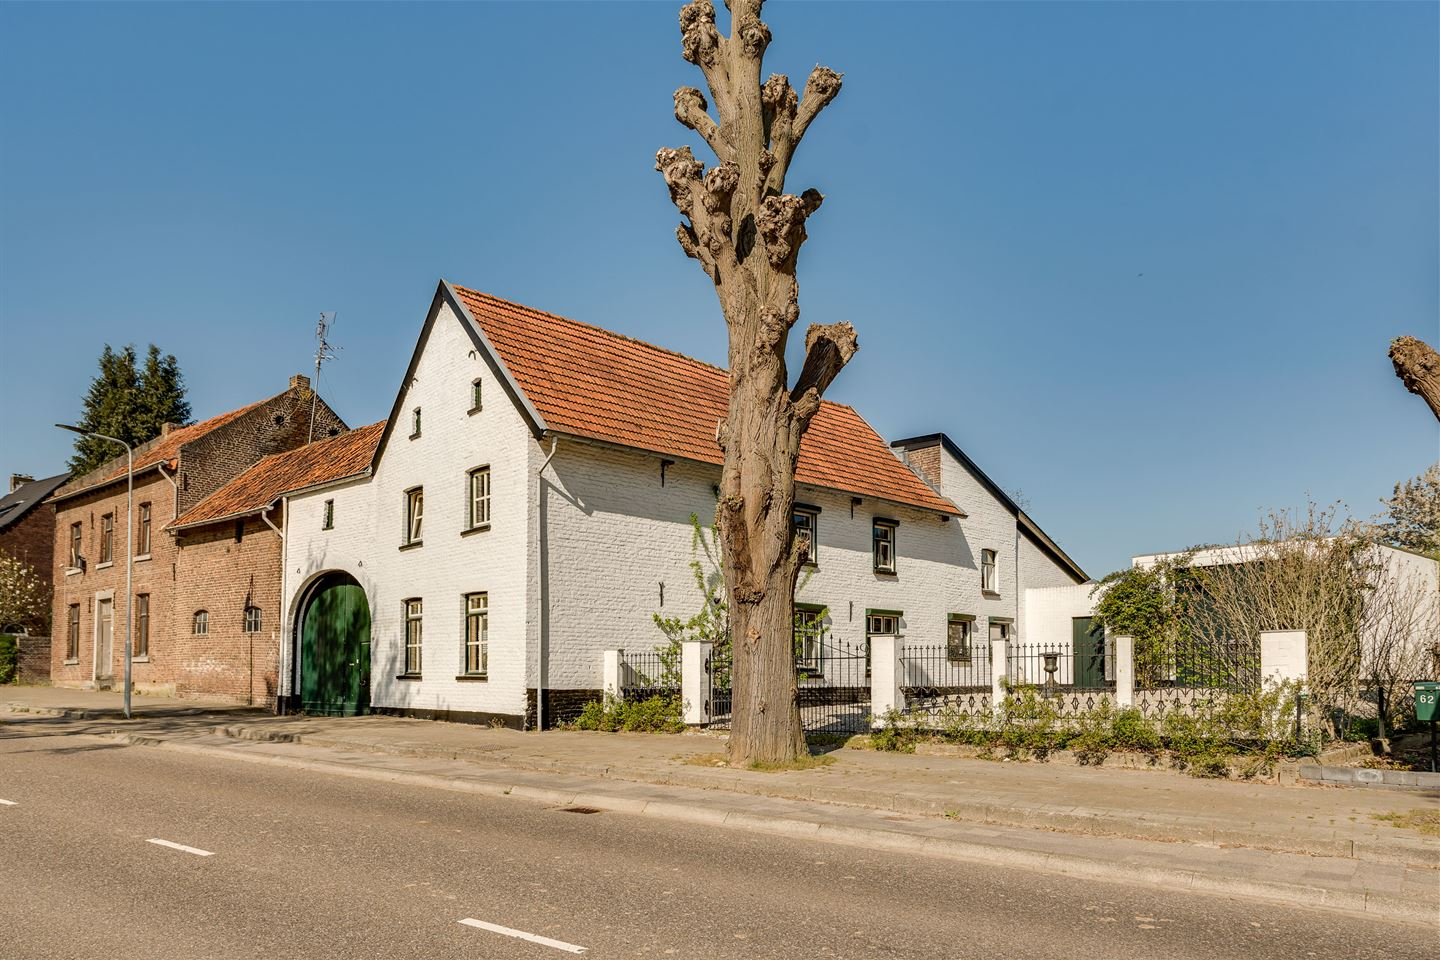 View photo 3 of Hommerter Allee 66